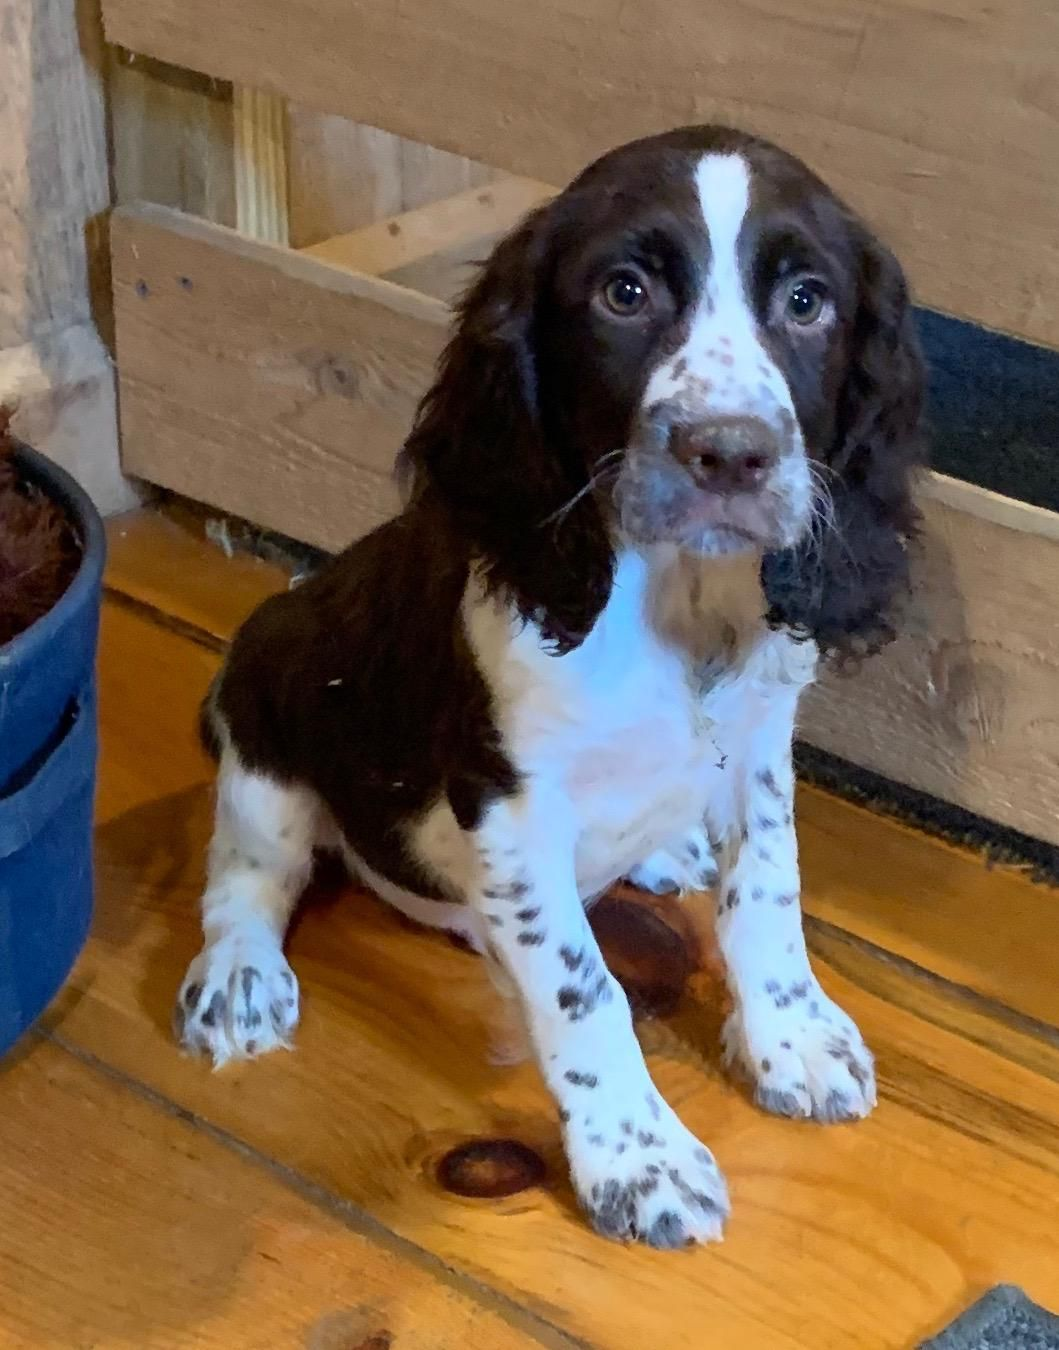 Stanley English Springer Spaniel Puppies For Sale In East Palestine Ohio Vip Puppies In 2020 Spaniel Puppies For Sale English Springer Spaniel Puppy Springer Spaniel Puppies